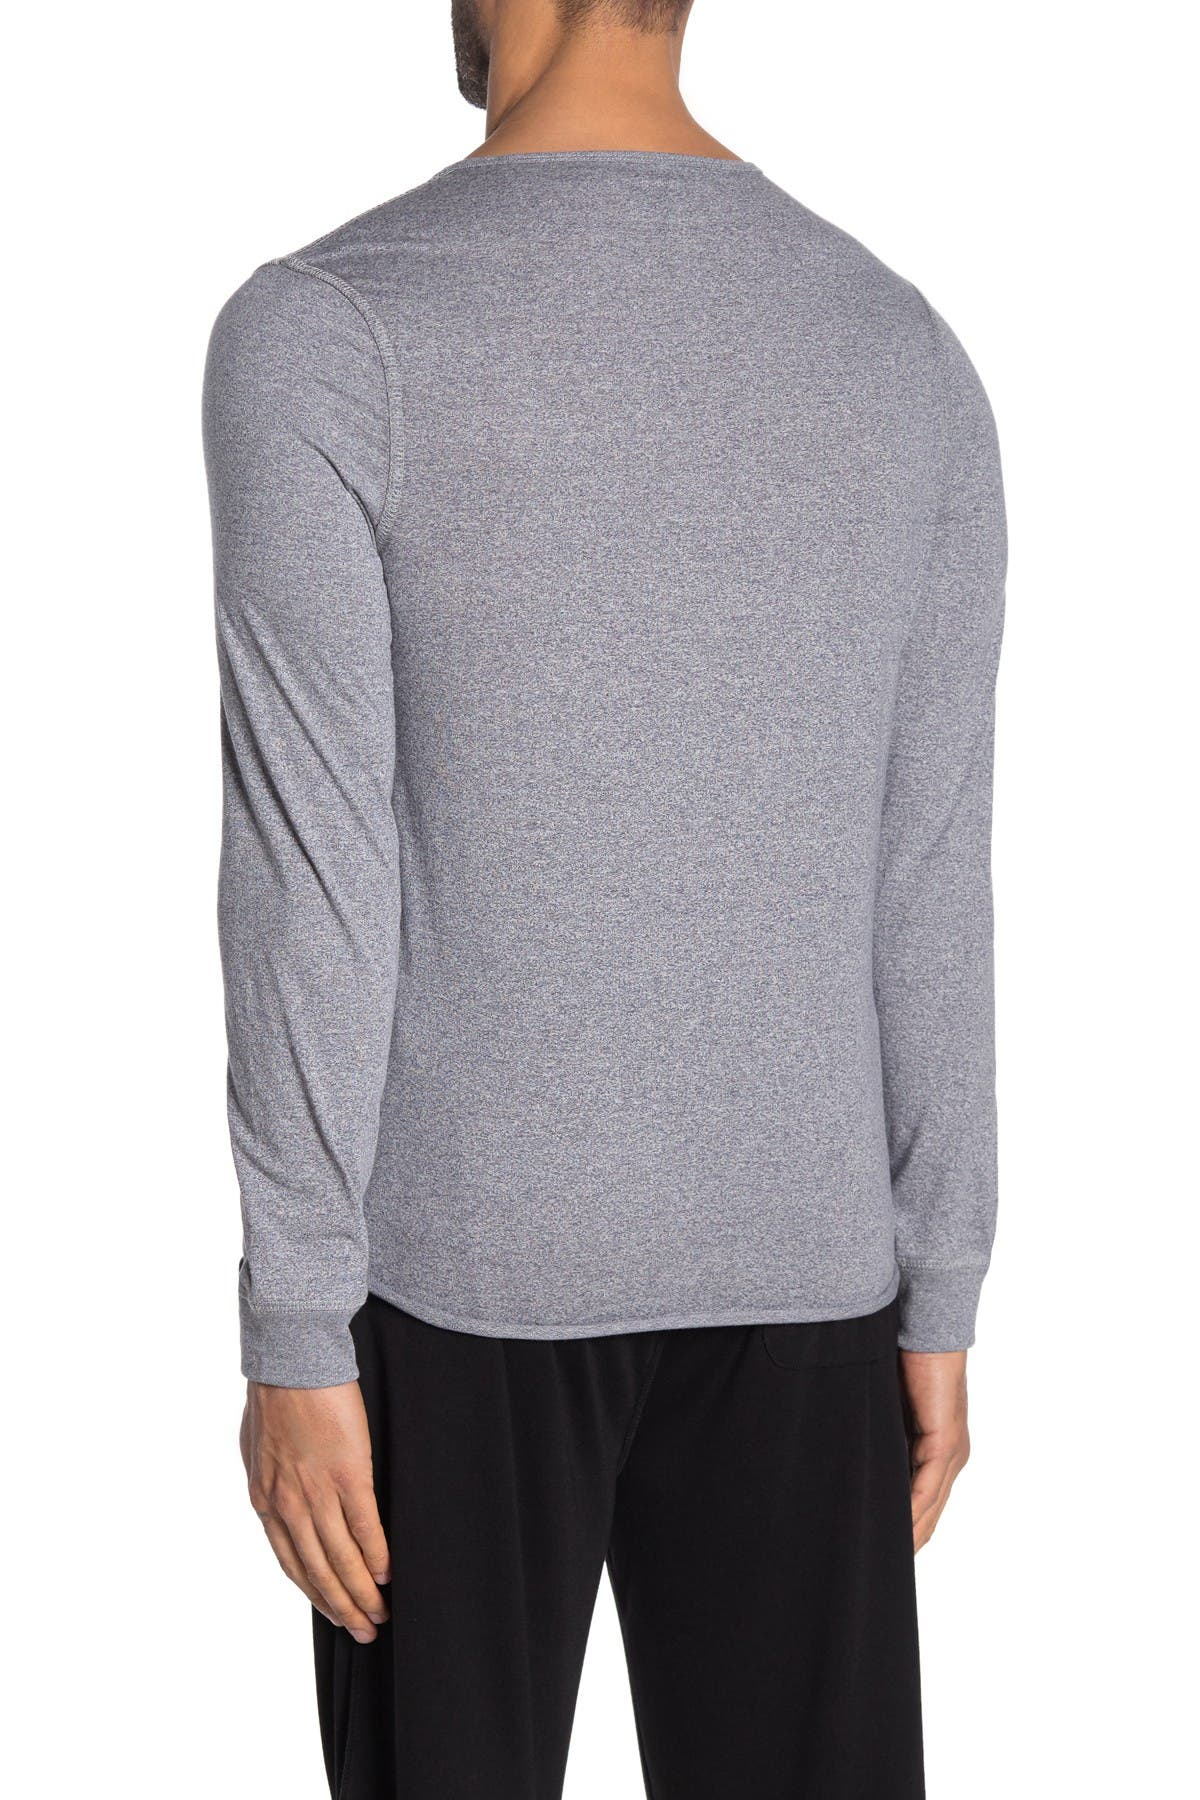 Image of Unsimply Stitched Super Soft Long Sleeve T-Shirt